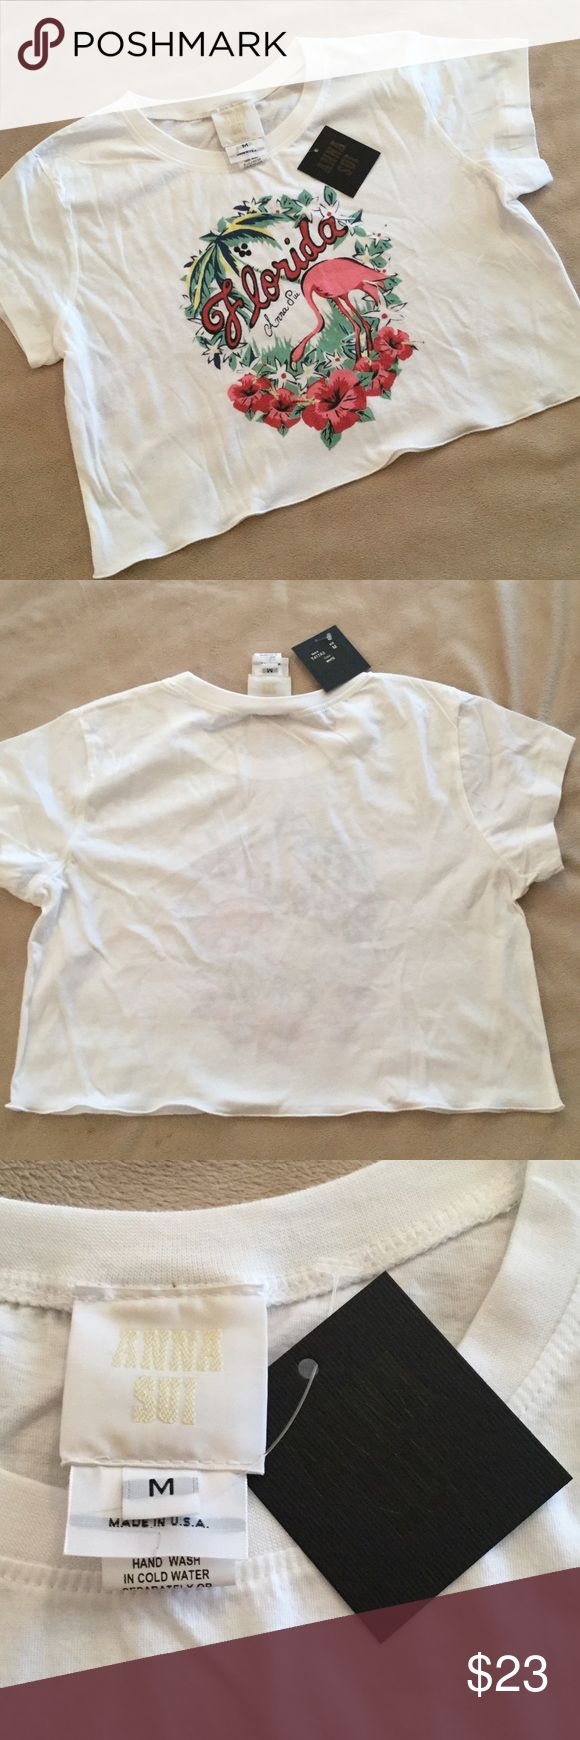 NWT Anna Sui crop reasonable offers 💥 NWT White crop tee Anna Sui. Smoke free home Anna Sui Tops Crop Tops